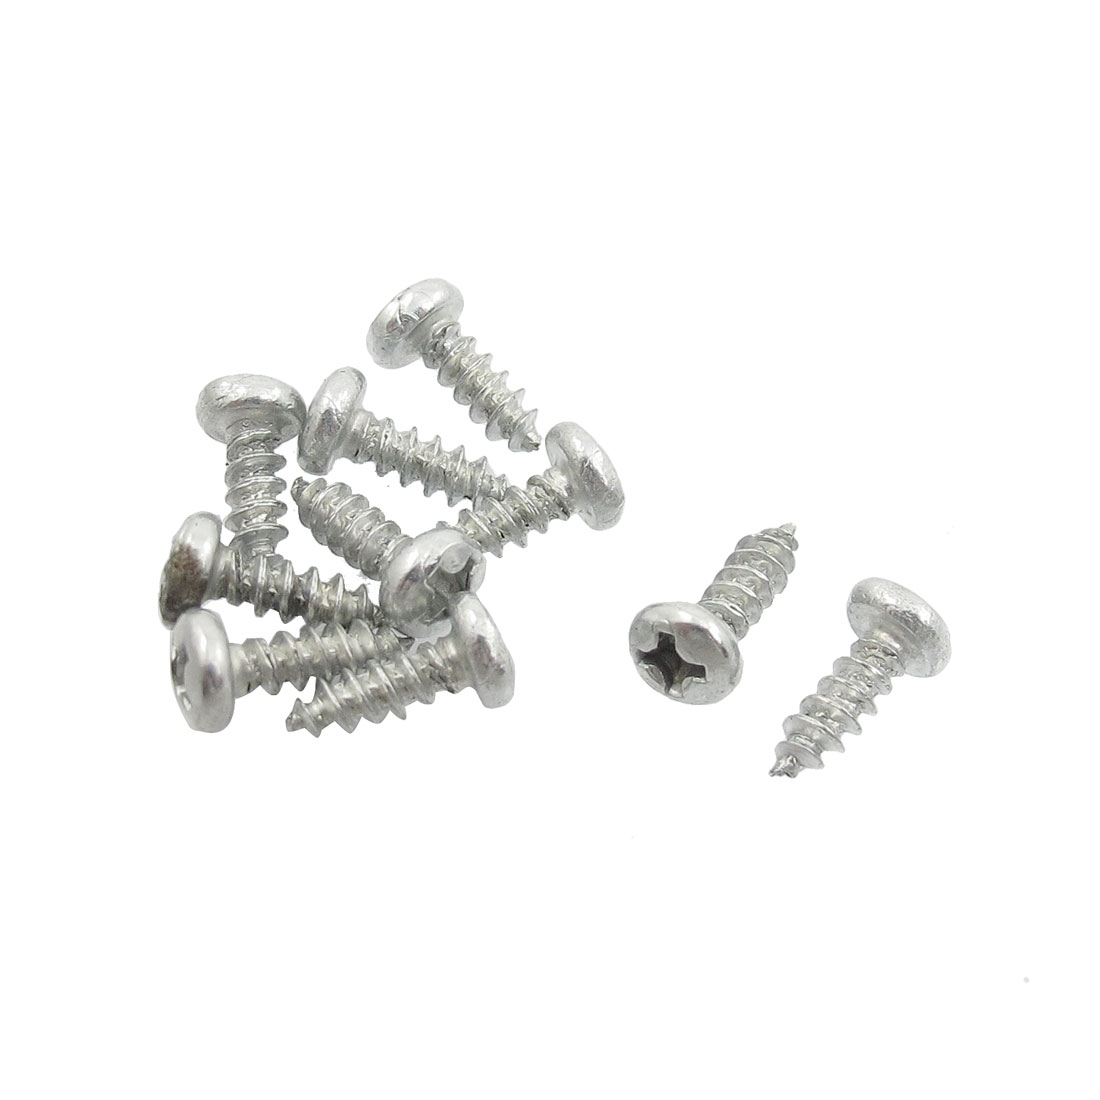 "10 Pcs 1/8"" x 1/3"" Phillips Cap Self Tapping Screw for Bosch GWS6-100 Angle Grinder Electric Brush"